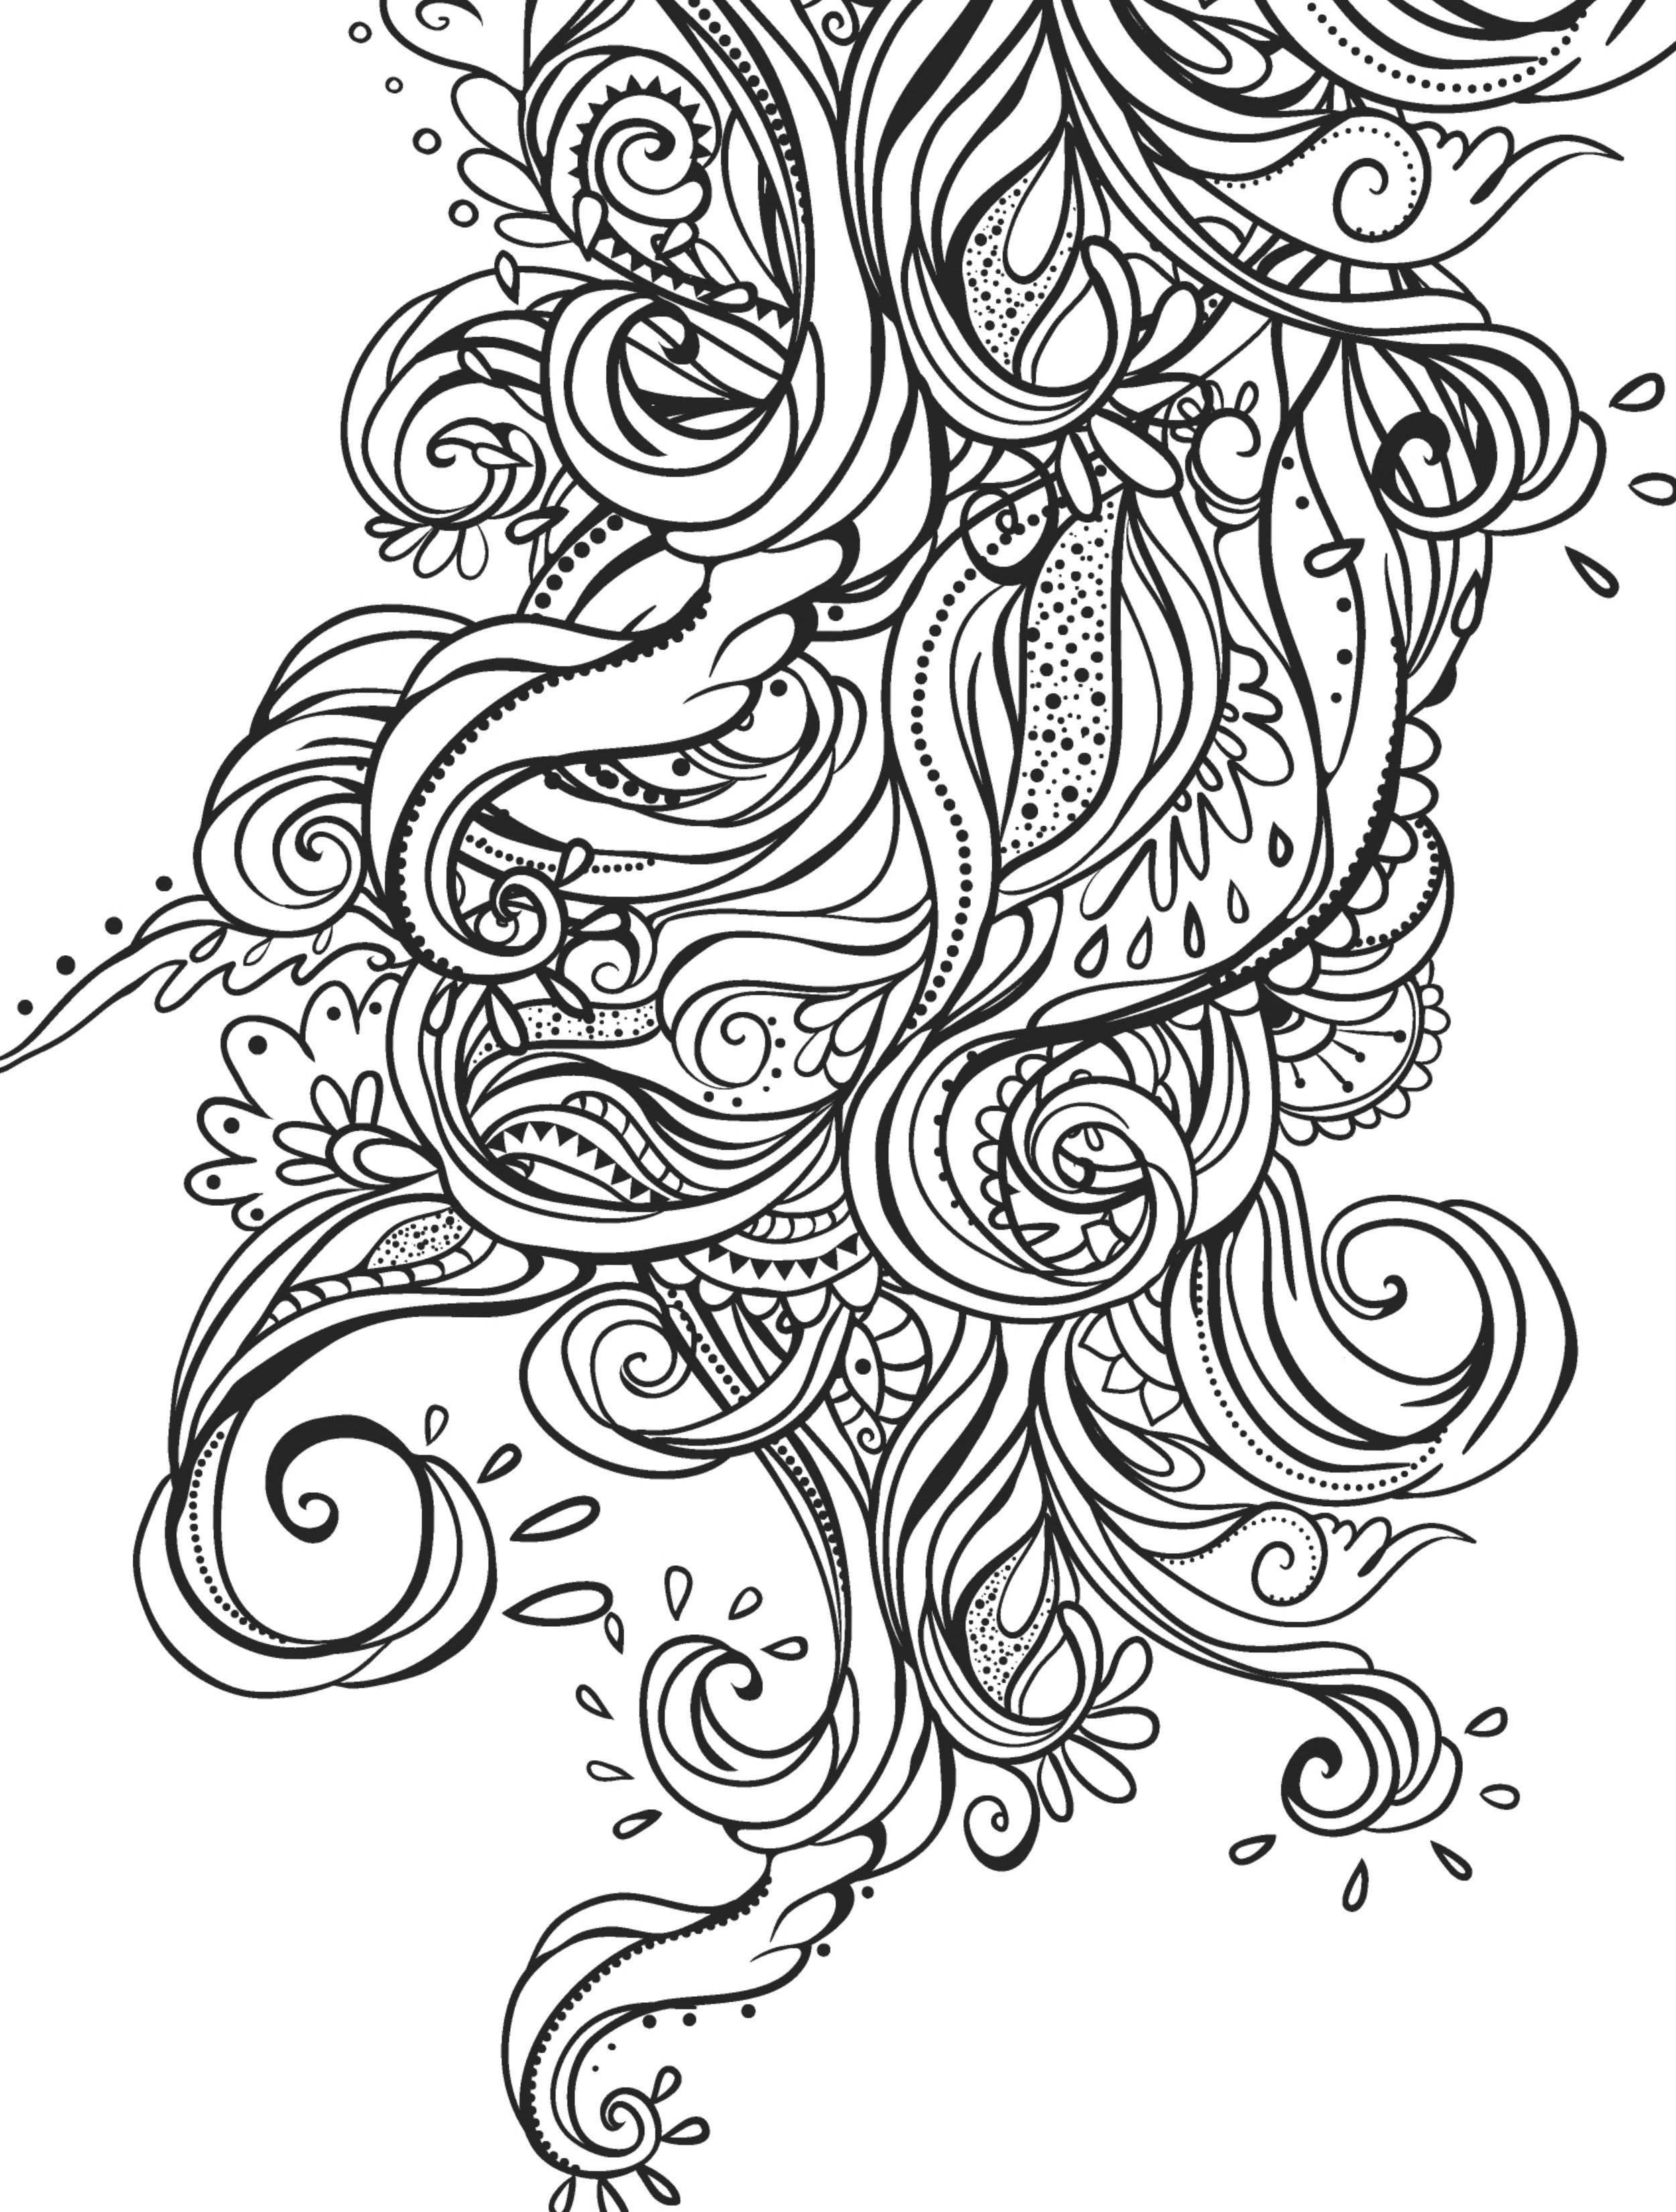 Rose Pen Drawing At Getdrawings Com Free For Personal Use